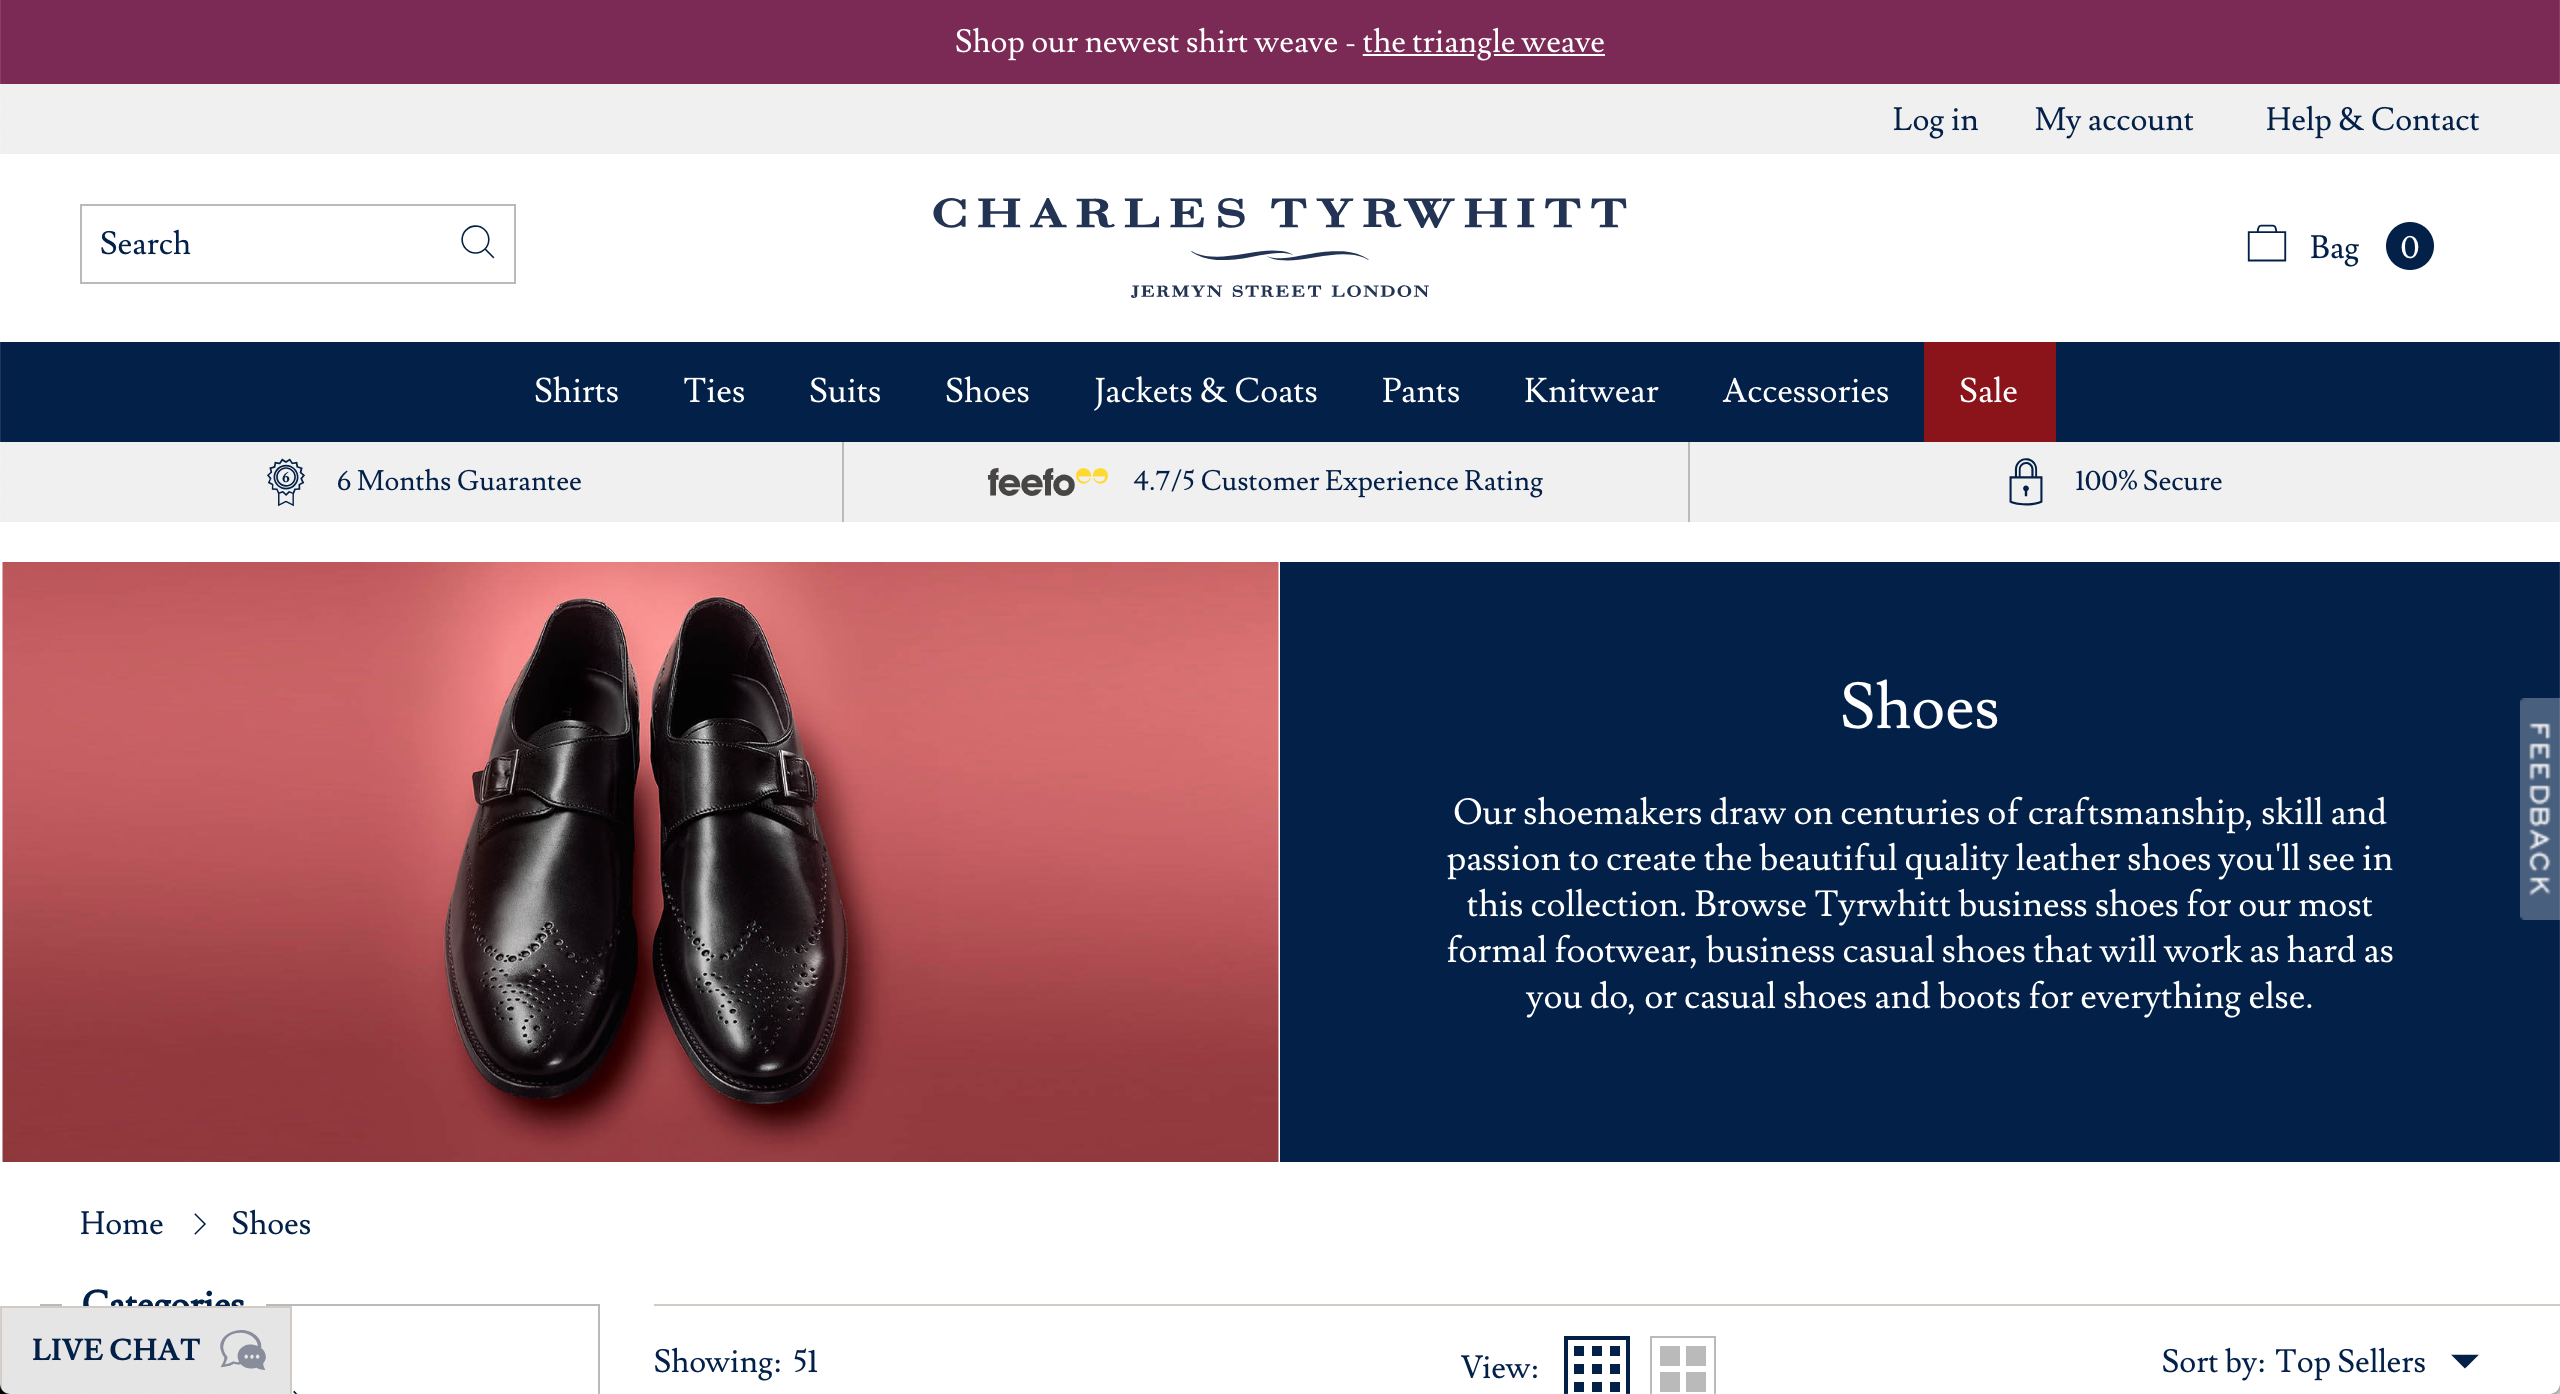 Charles Tyrwhitt shoes page